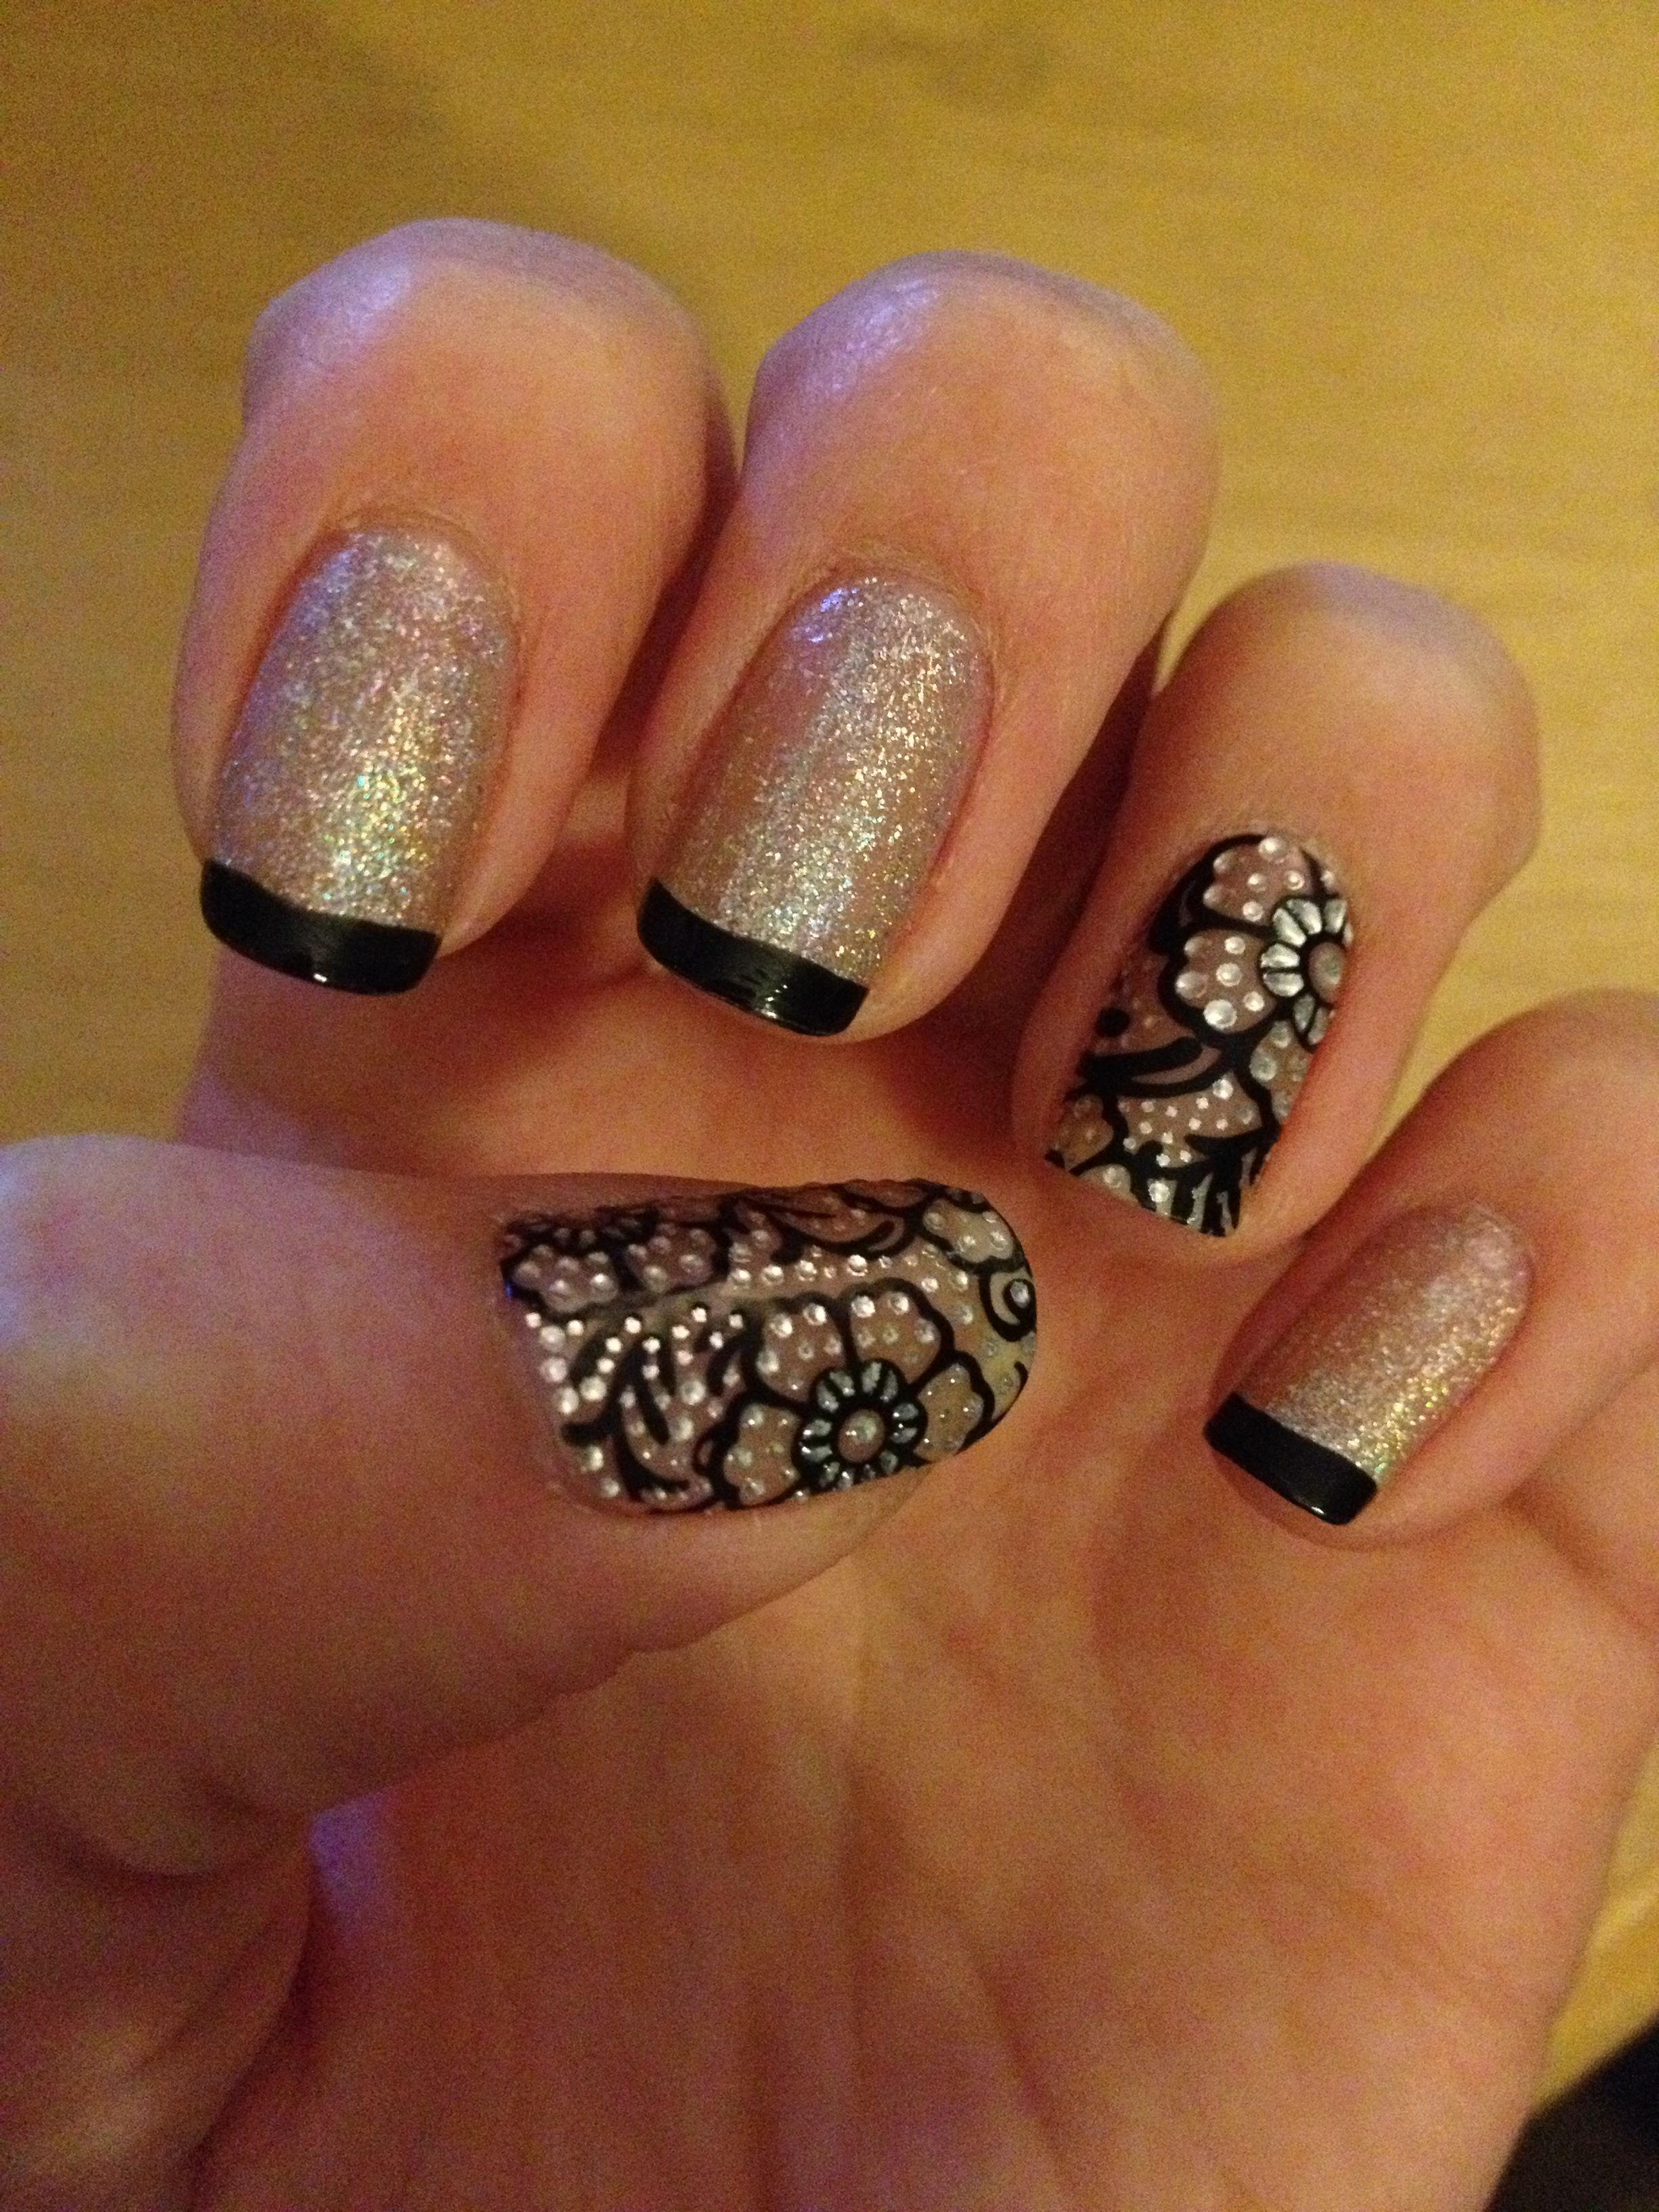 Decals from Dashing Diva<3 | nails,nails,nails | Pinterest | Diva ...